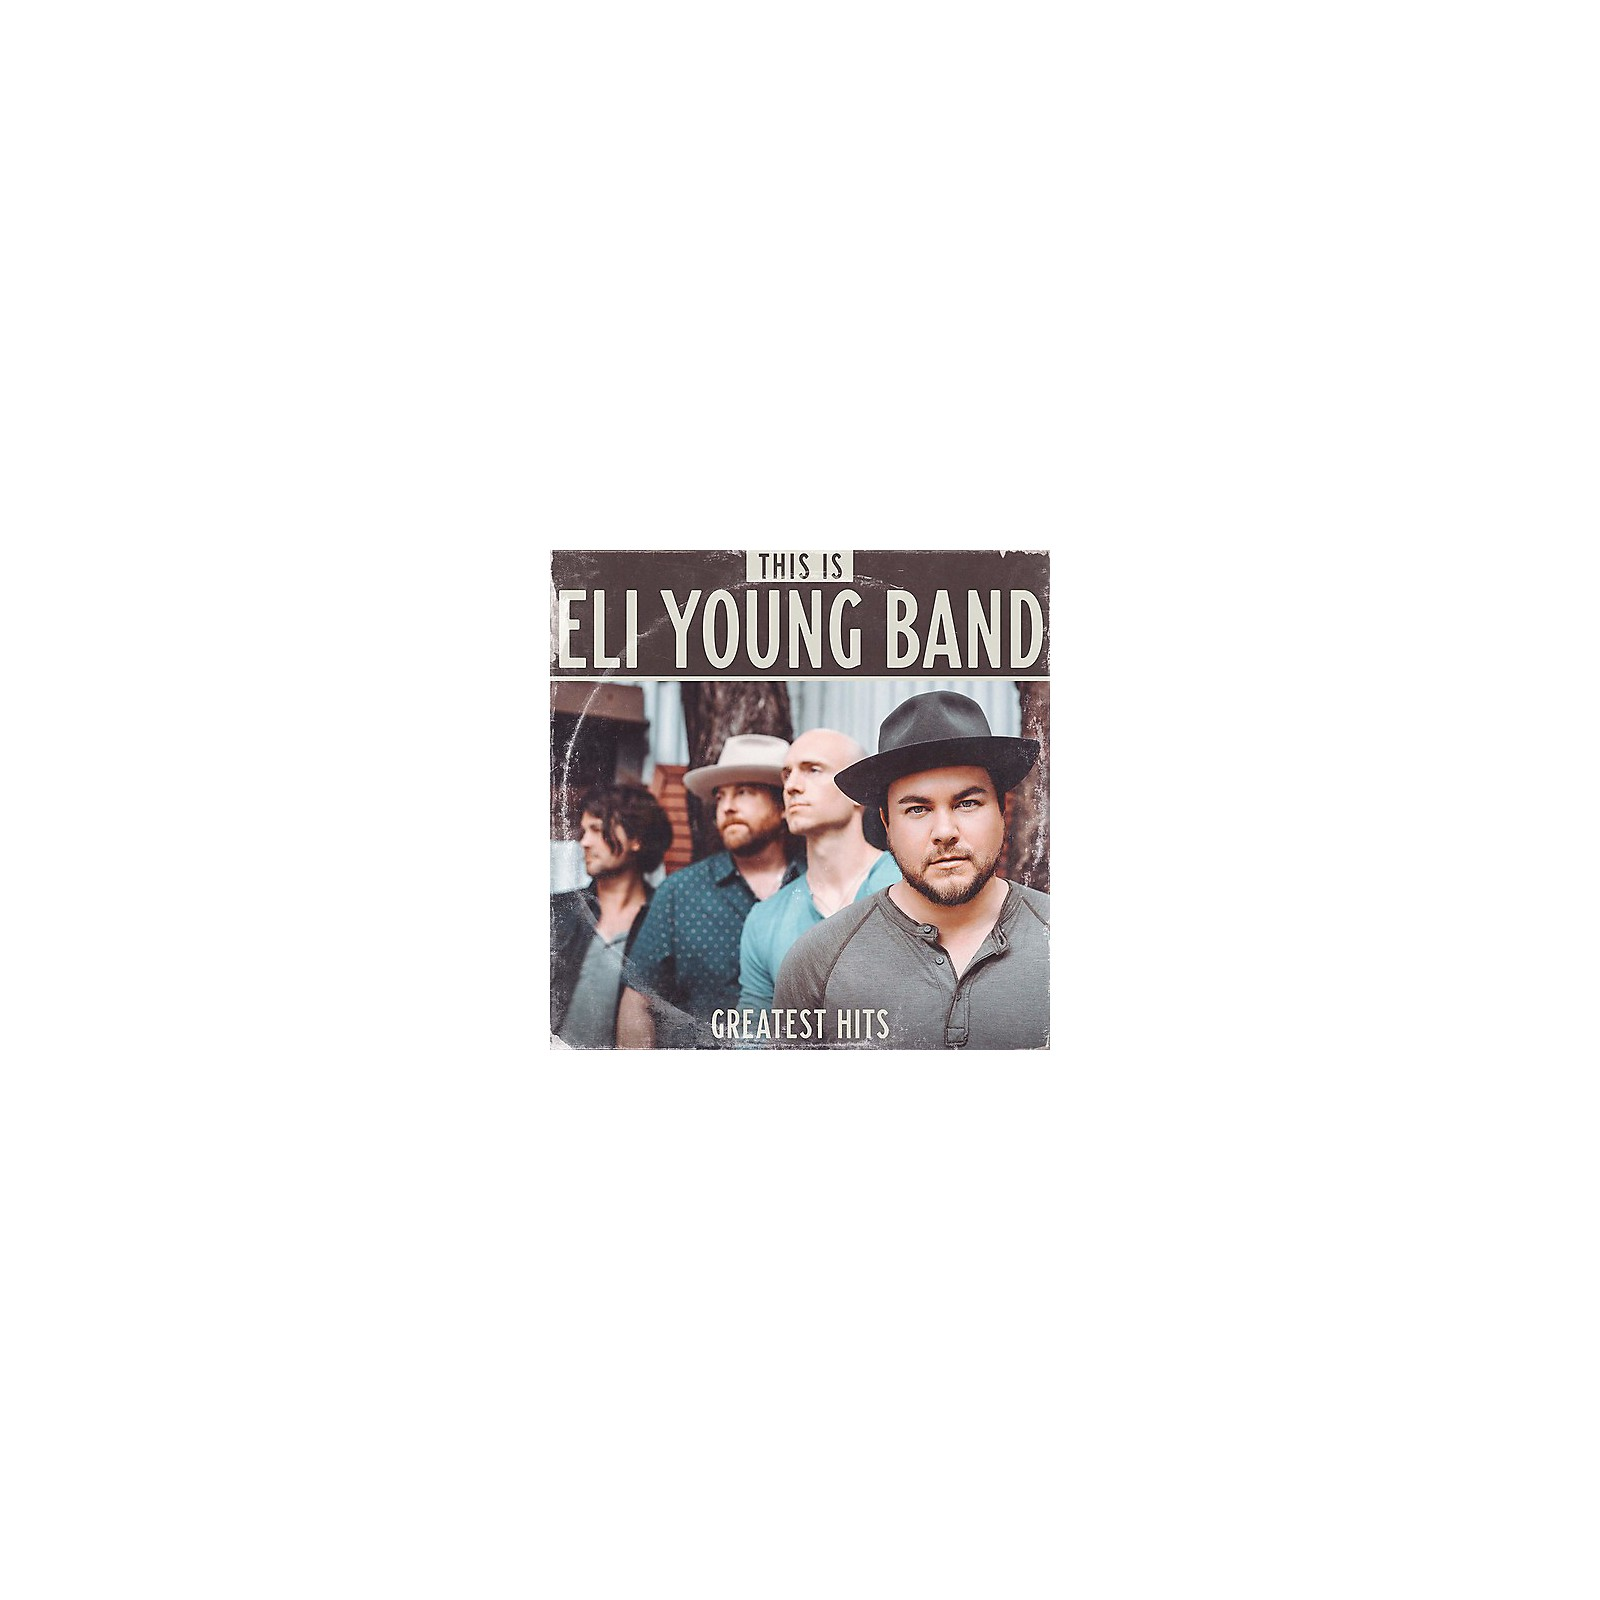 Alliance Eli Young - This Is Eli Young Band: Greatest Hits